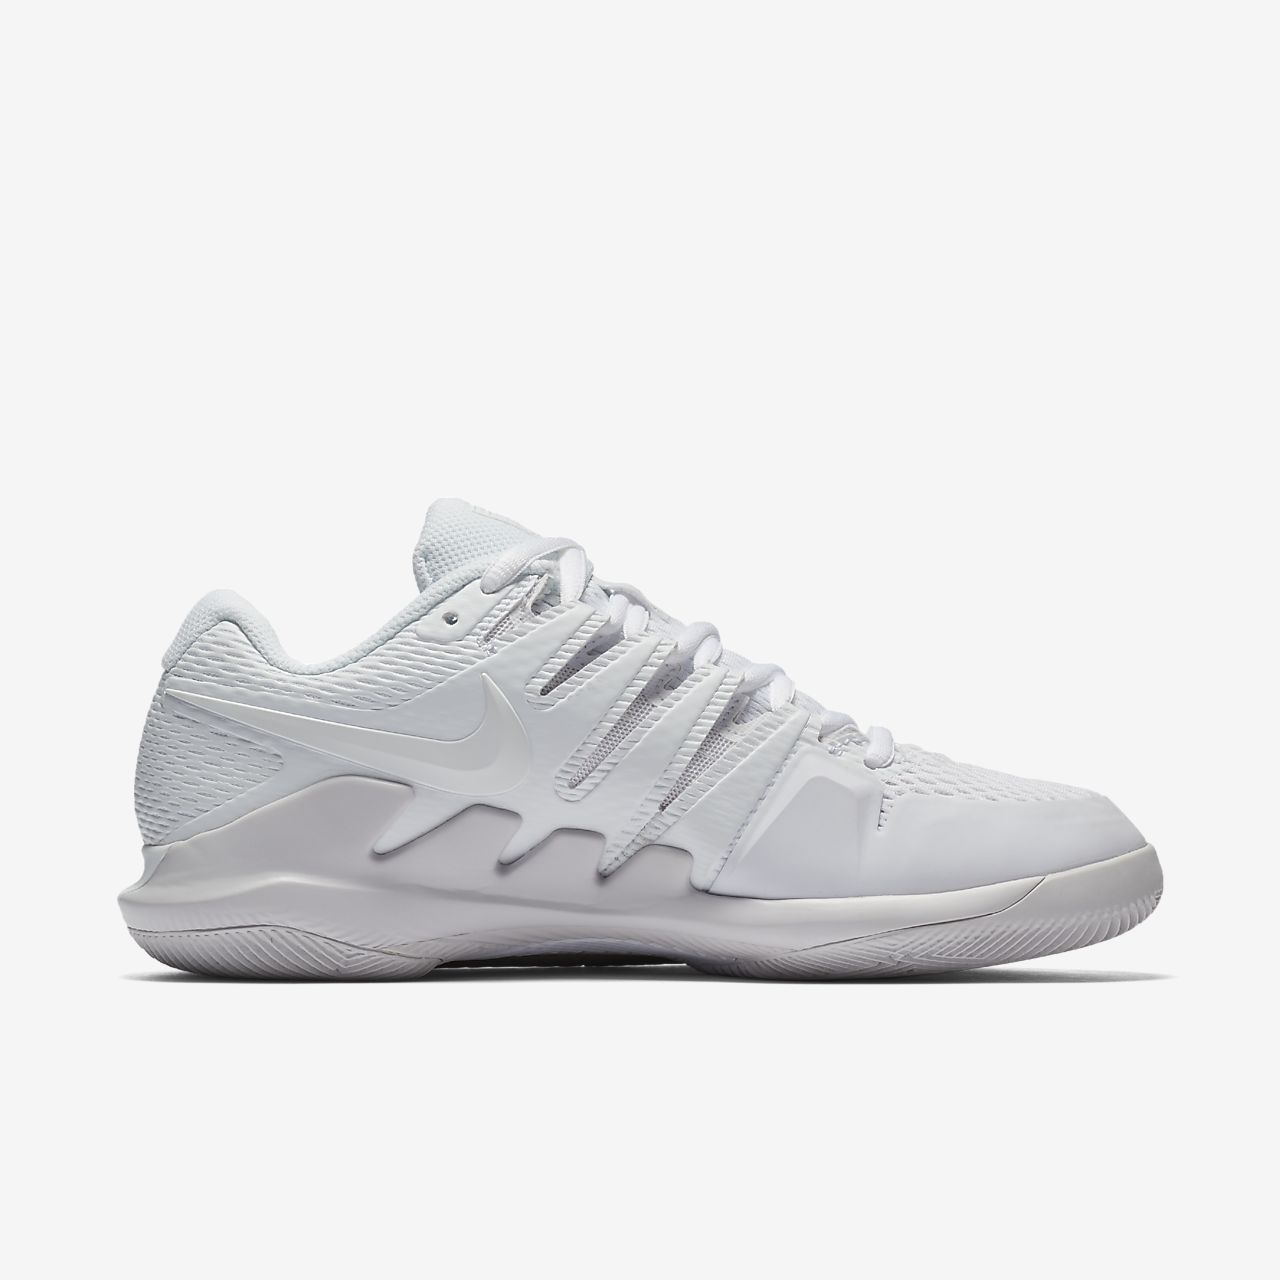 sports shoes e8507 9d7da ... NikeCourt Air Zoom Vapor X Women s Hard Court Tennis Shoe